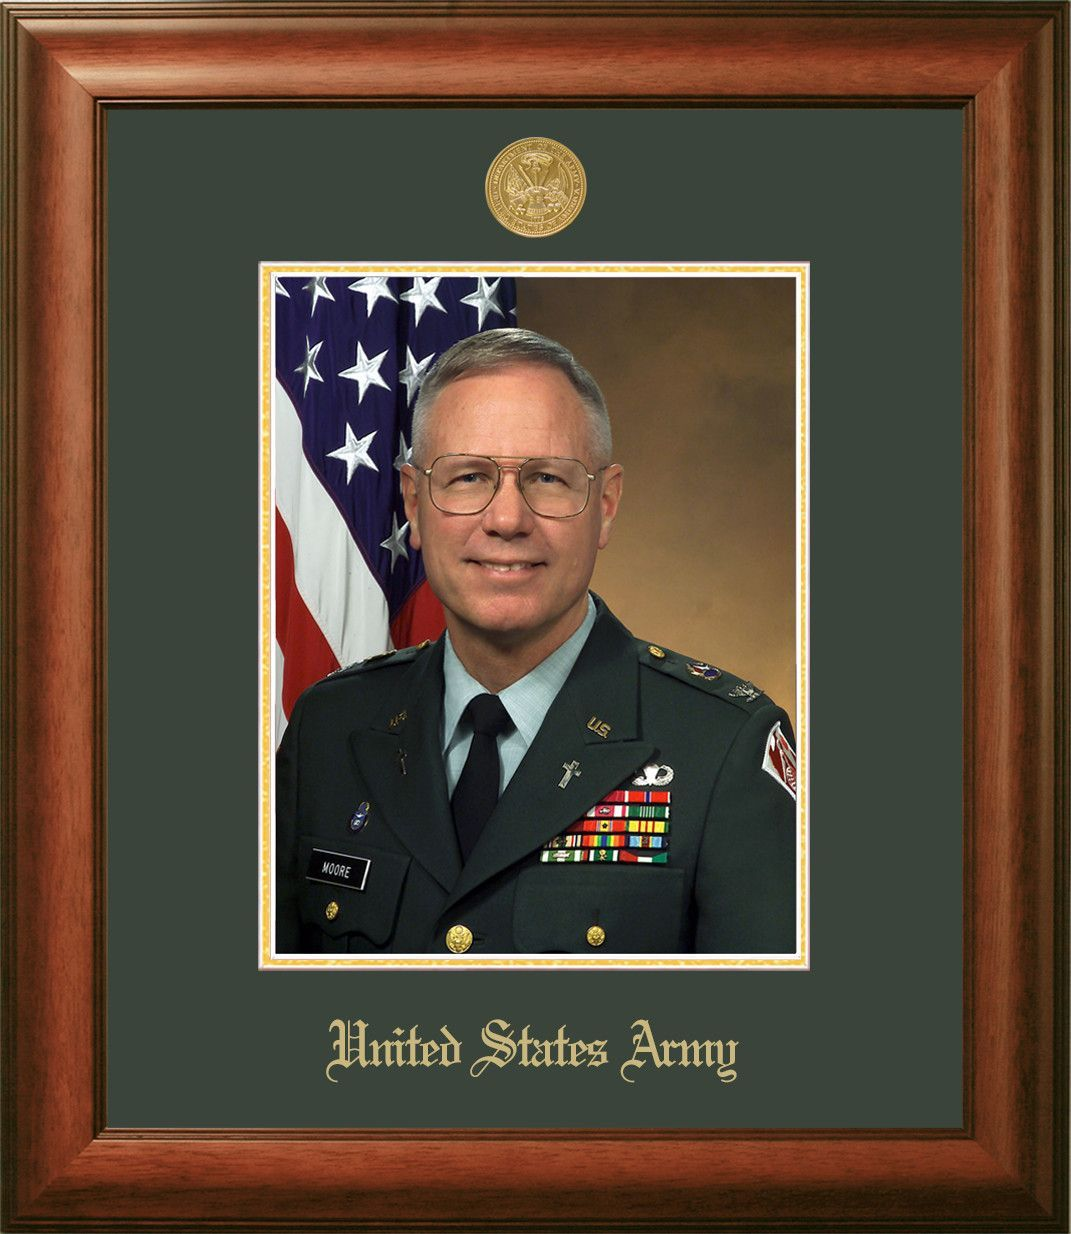 Army Portrait Picture Frame | Products | Pinterest